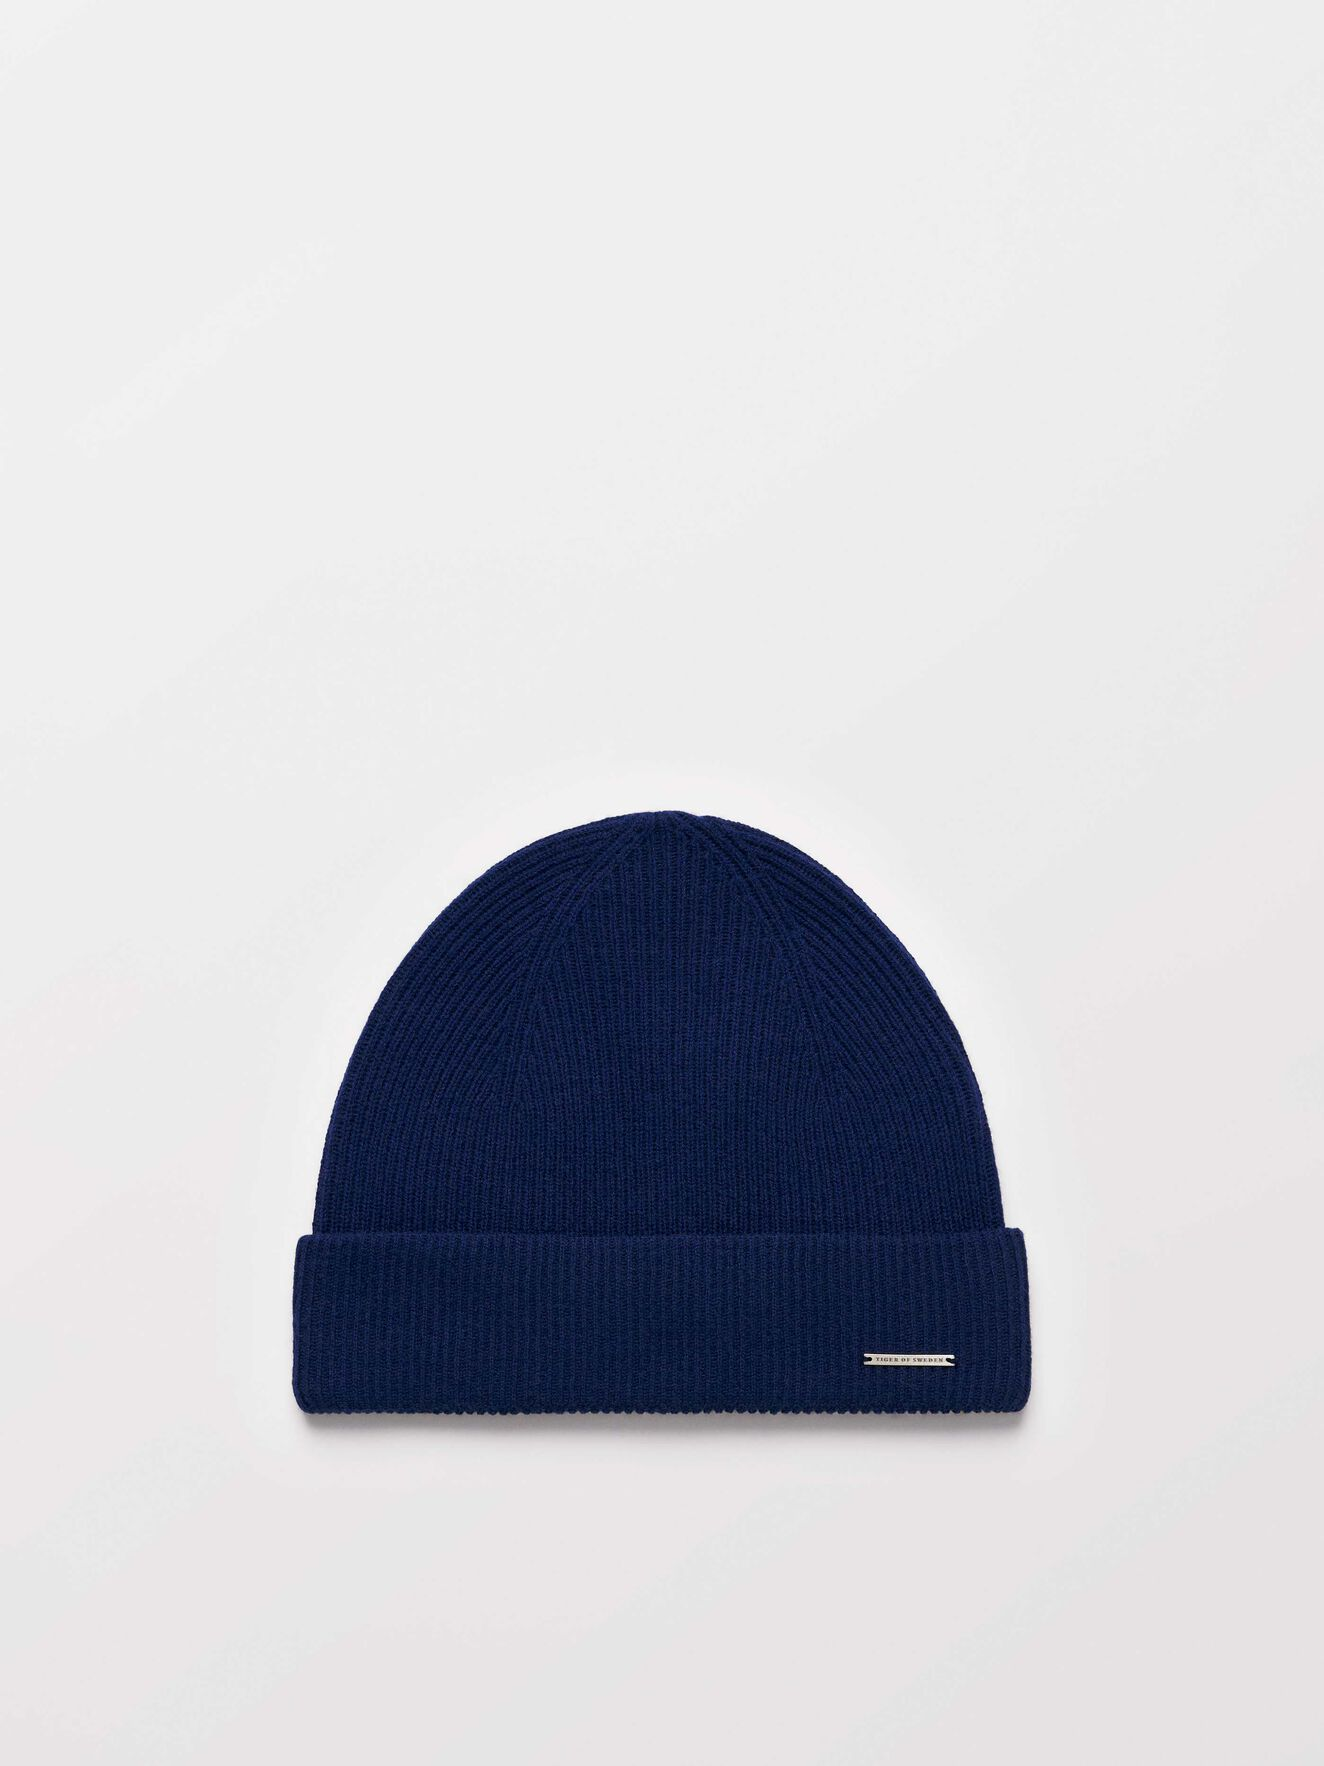 Halfo C Beanie in Outer Blue from Tiger of Sweden